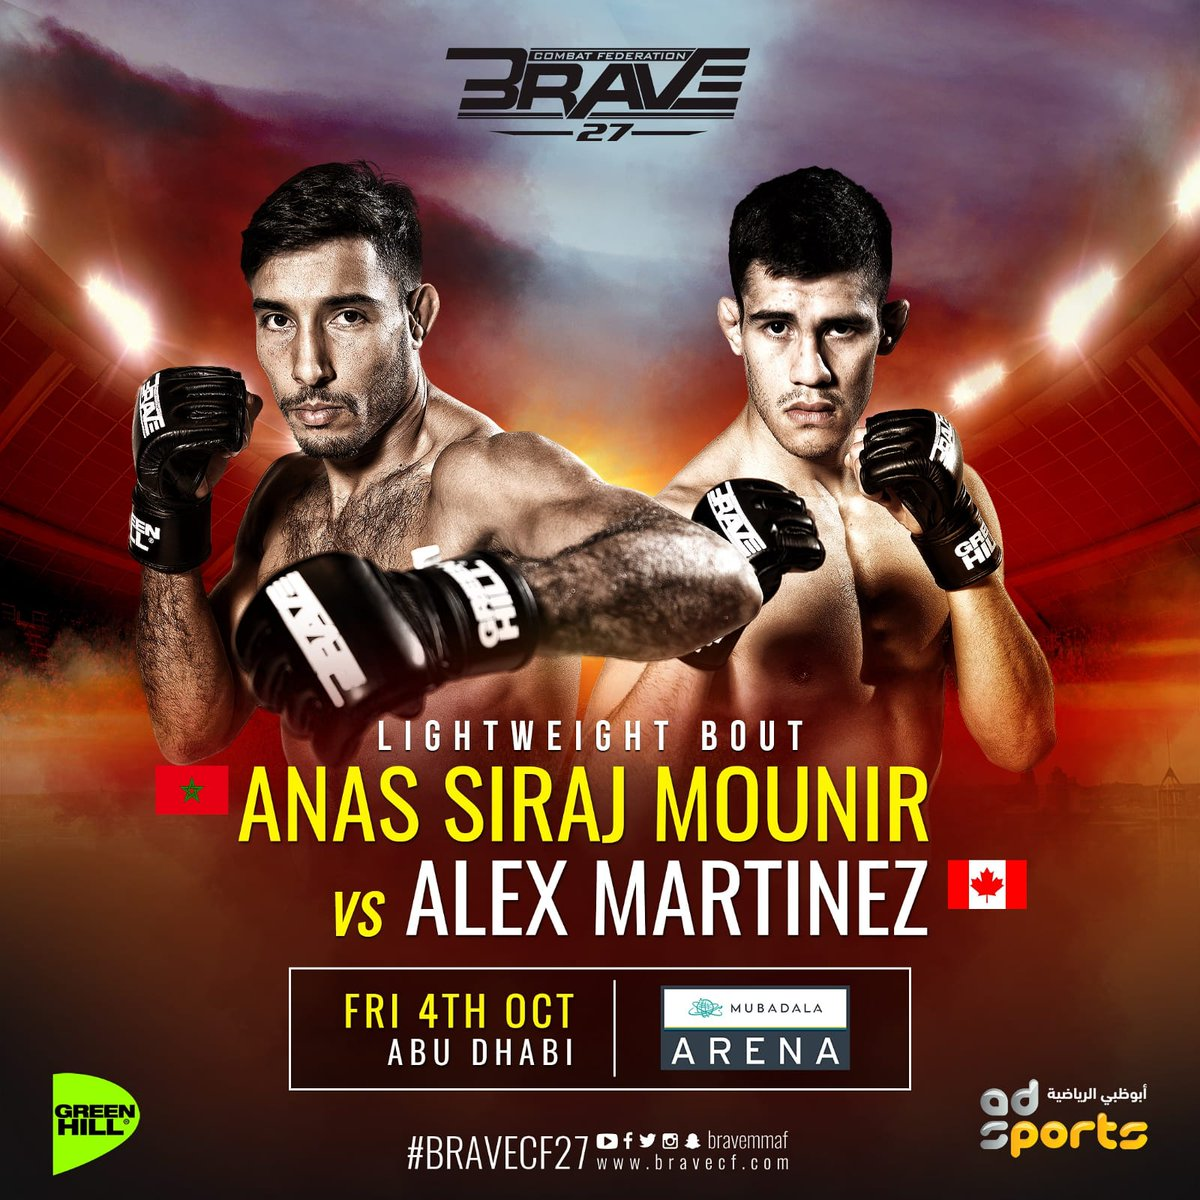 After an accidental low kick at #bravecf23🇯🇴 within the start of the fight which resulted in a NO CONTEST bout The REMATCH is set between   🇲🇦 @Sirajmounir86 and  🇨🇦 @Mmartinez_alex  #BRAVECF27🇦🇪  Who do you think will get the WIN⁉️ #inabudhabi #mma #lightweight  #morocco #Canada https://t.co/jnNy32oE1S